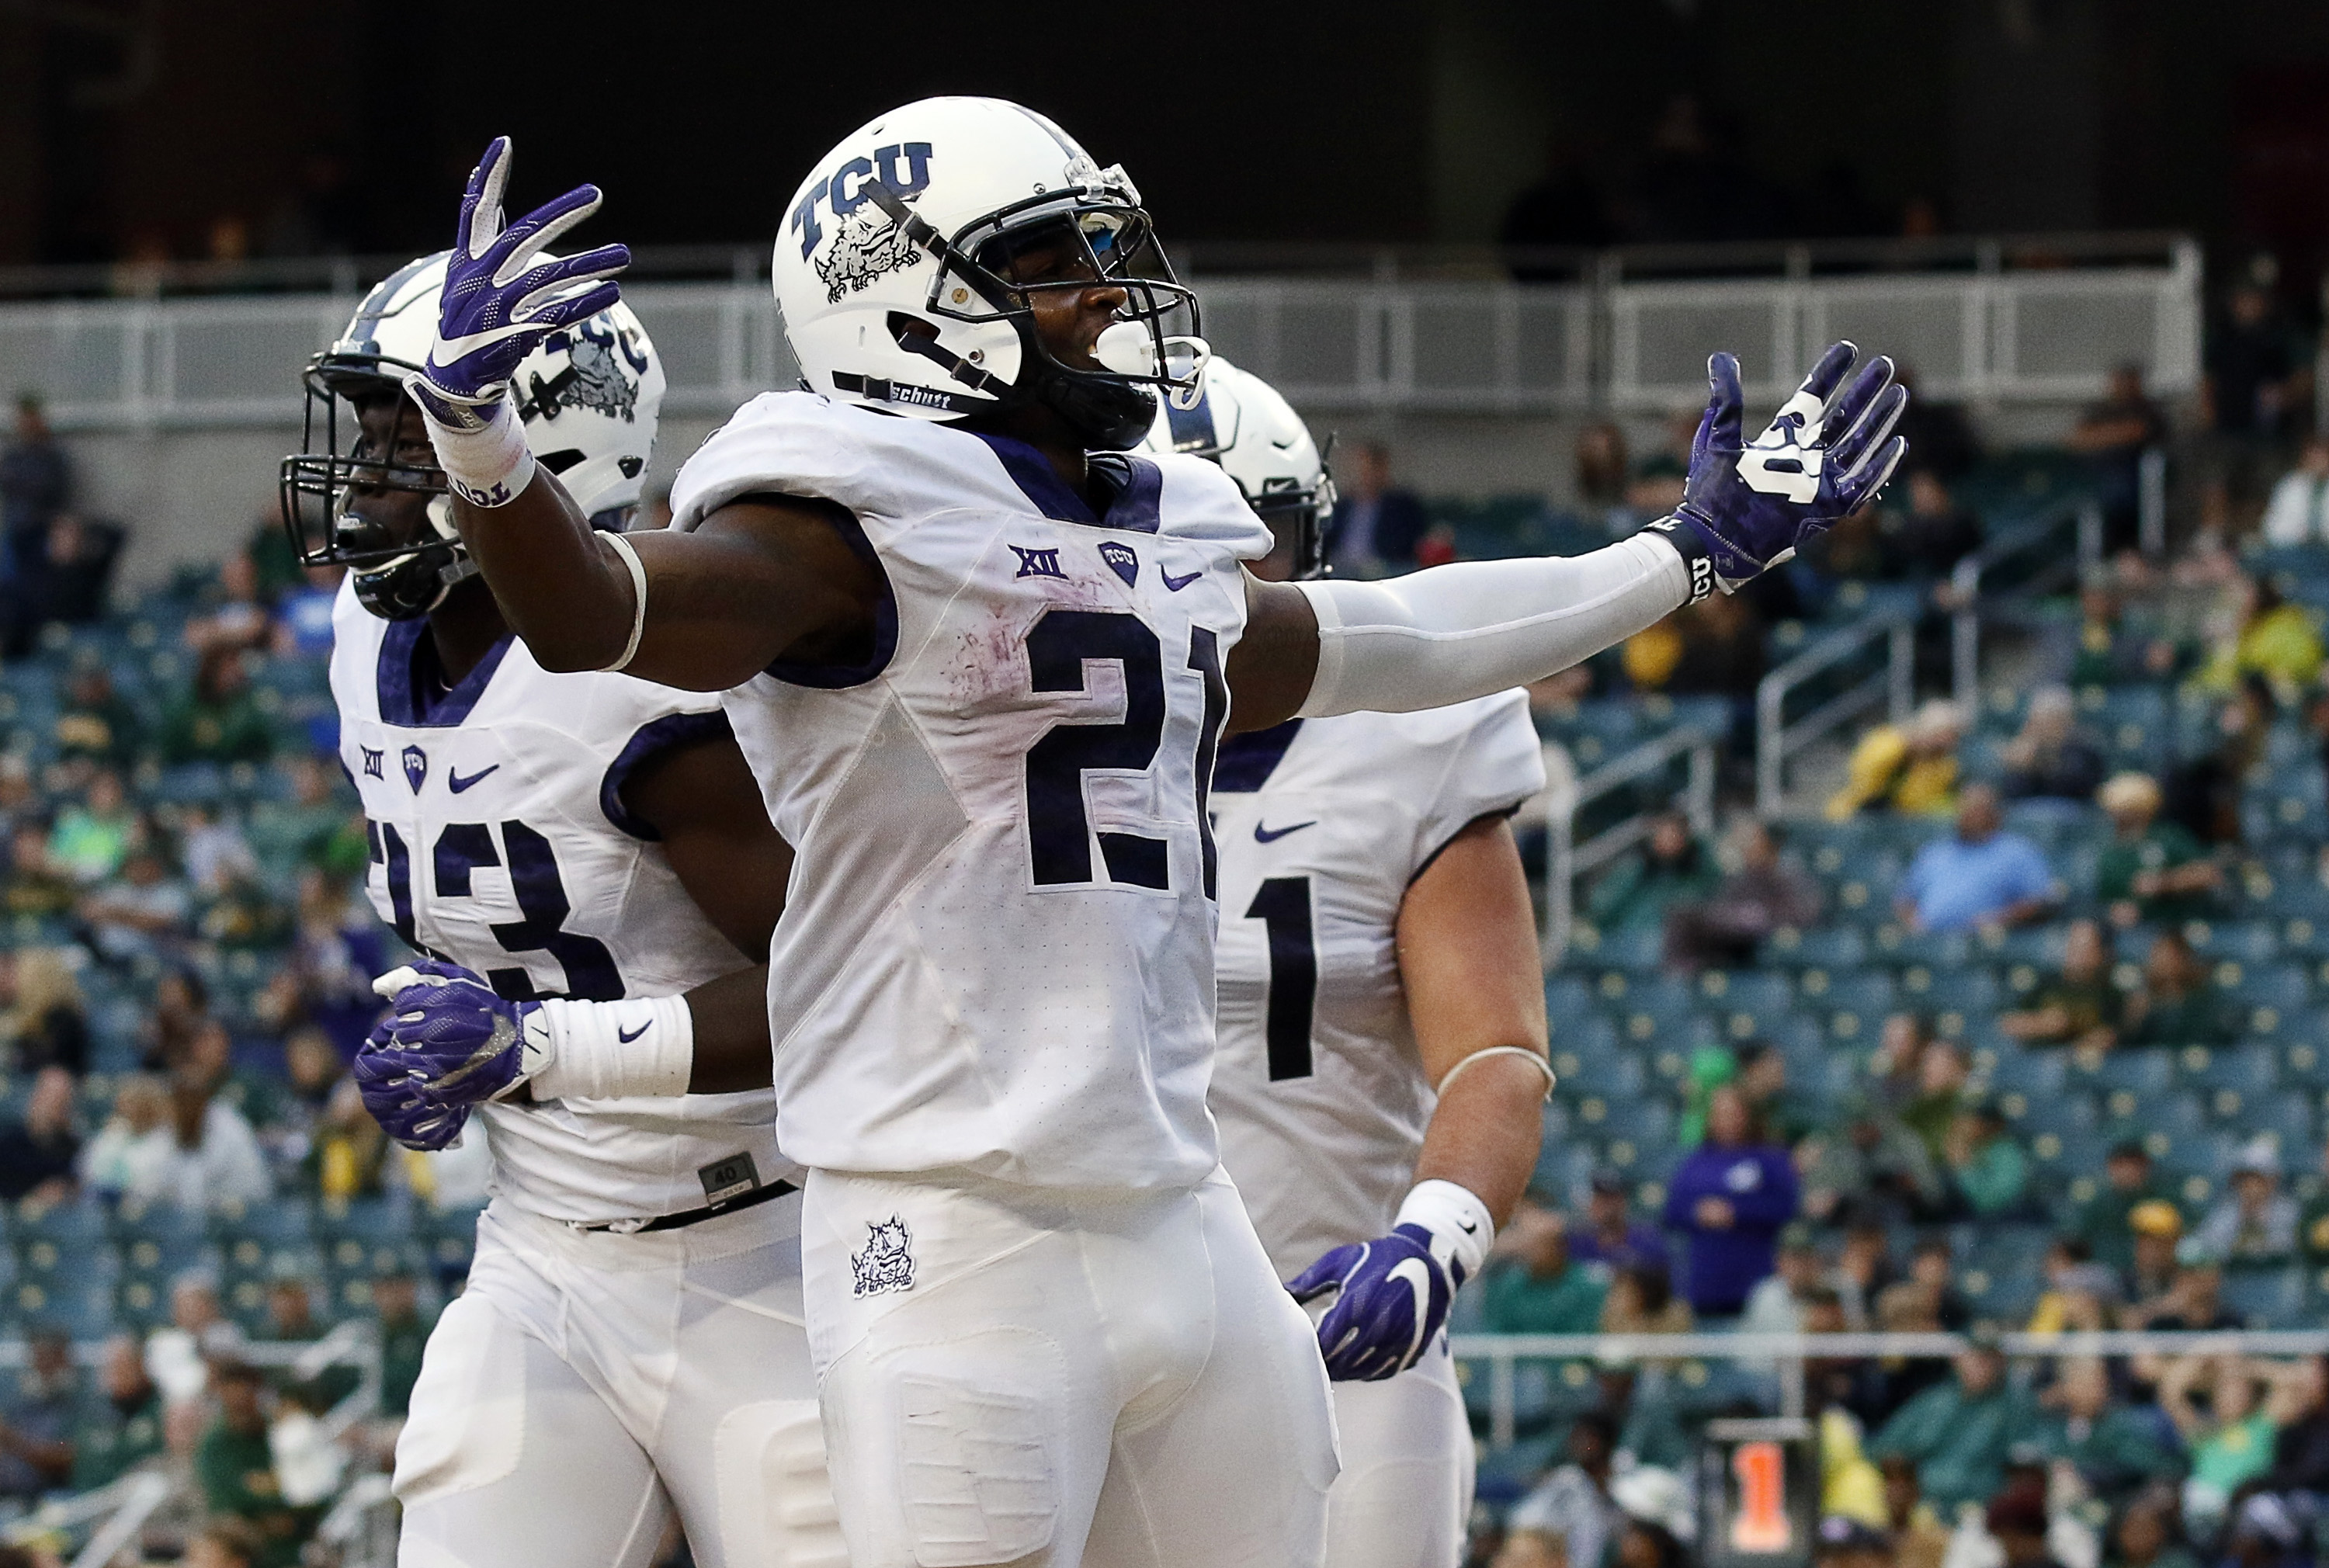 The Frogs are back on the rise after a Powerful performance in Waco